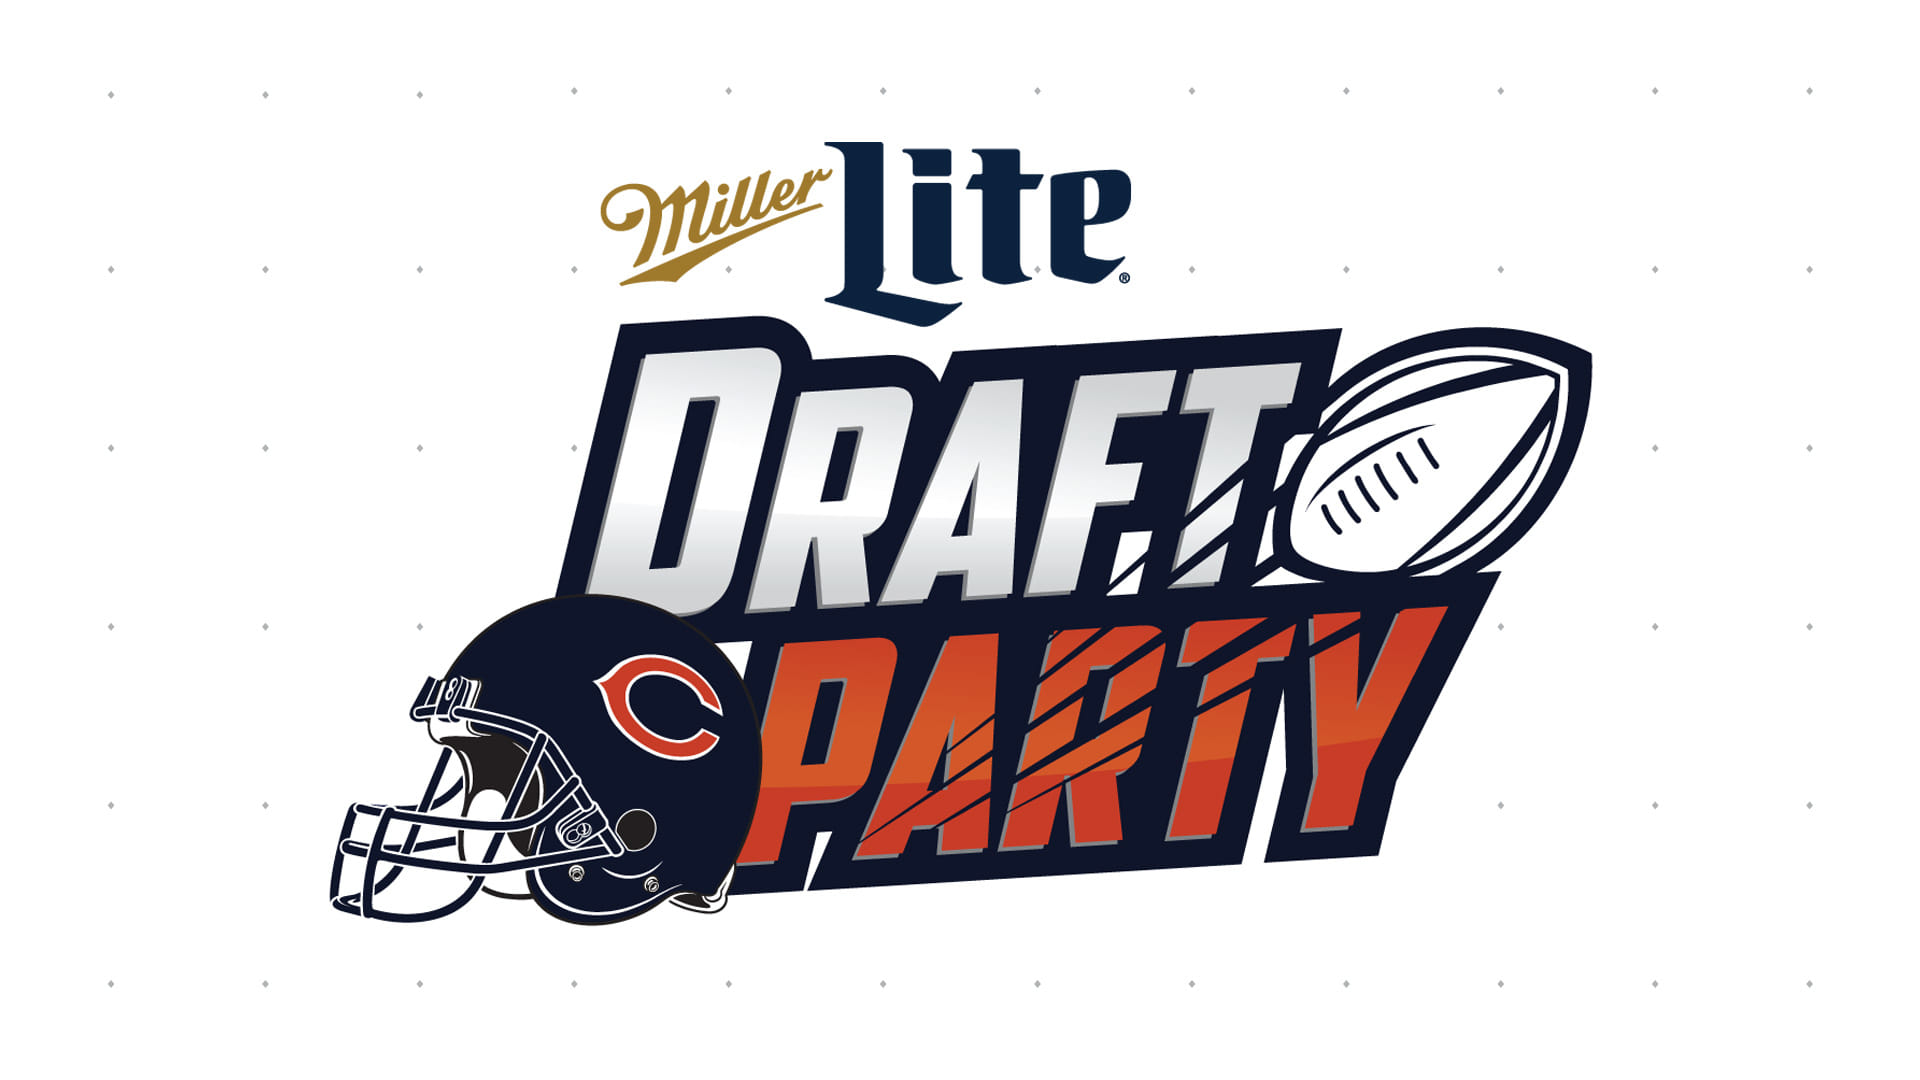 Miller Lite Chicago Bears Draft Party